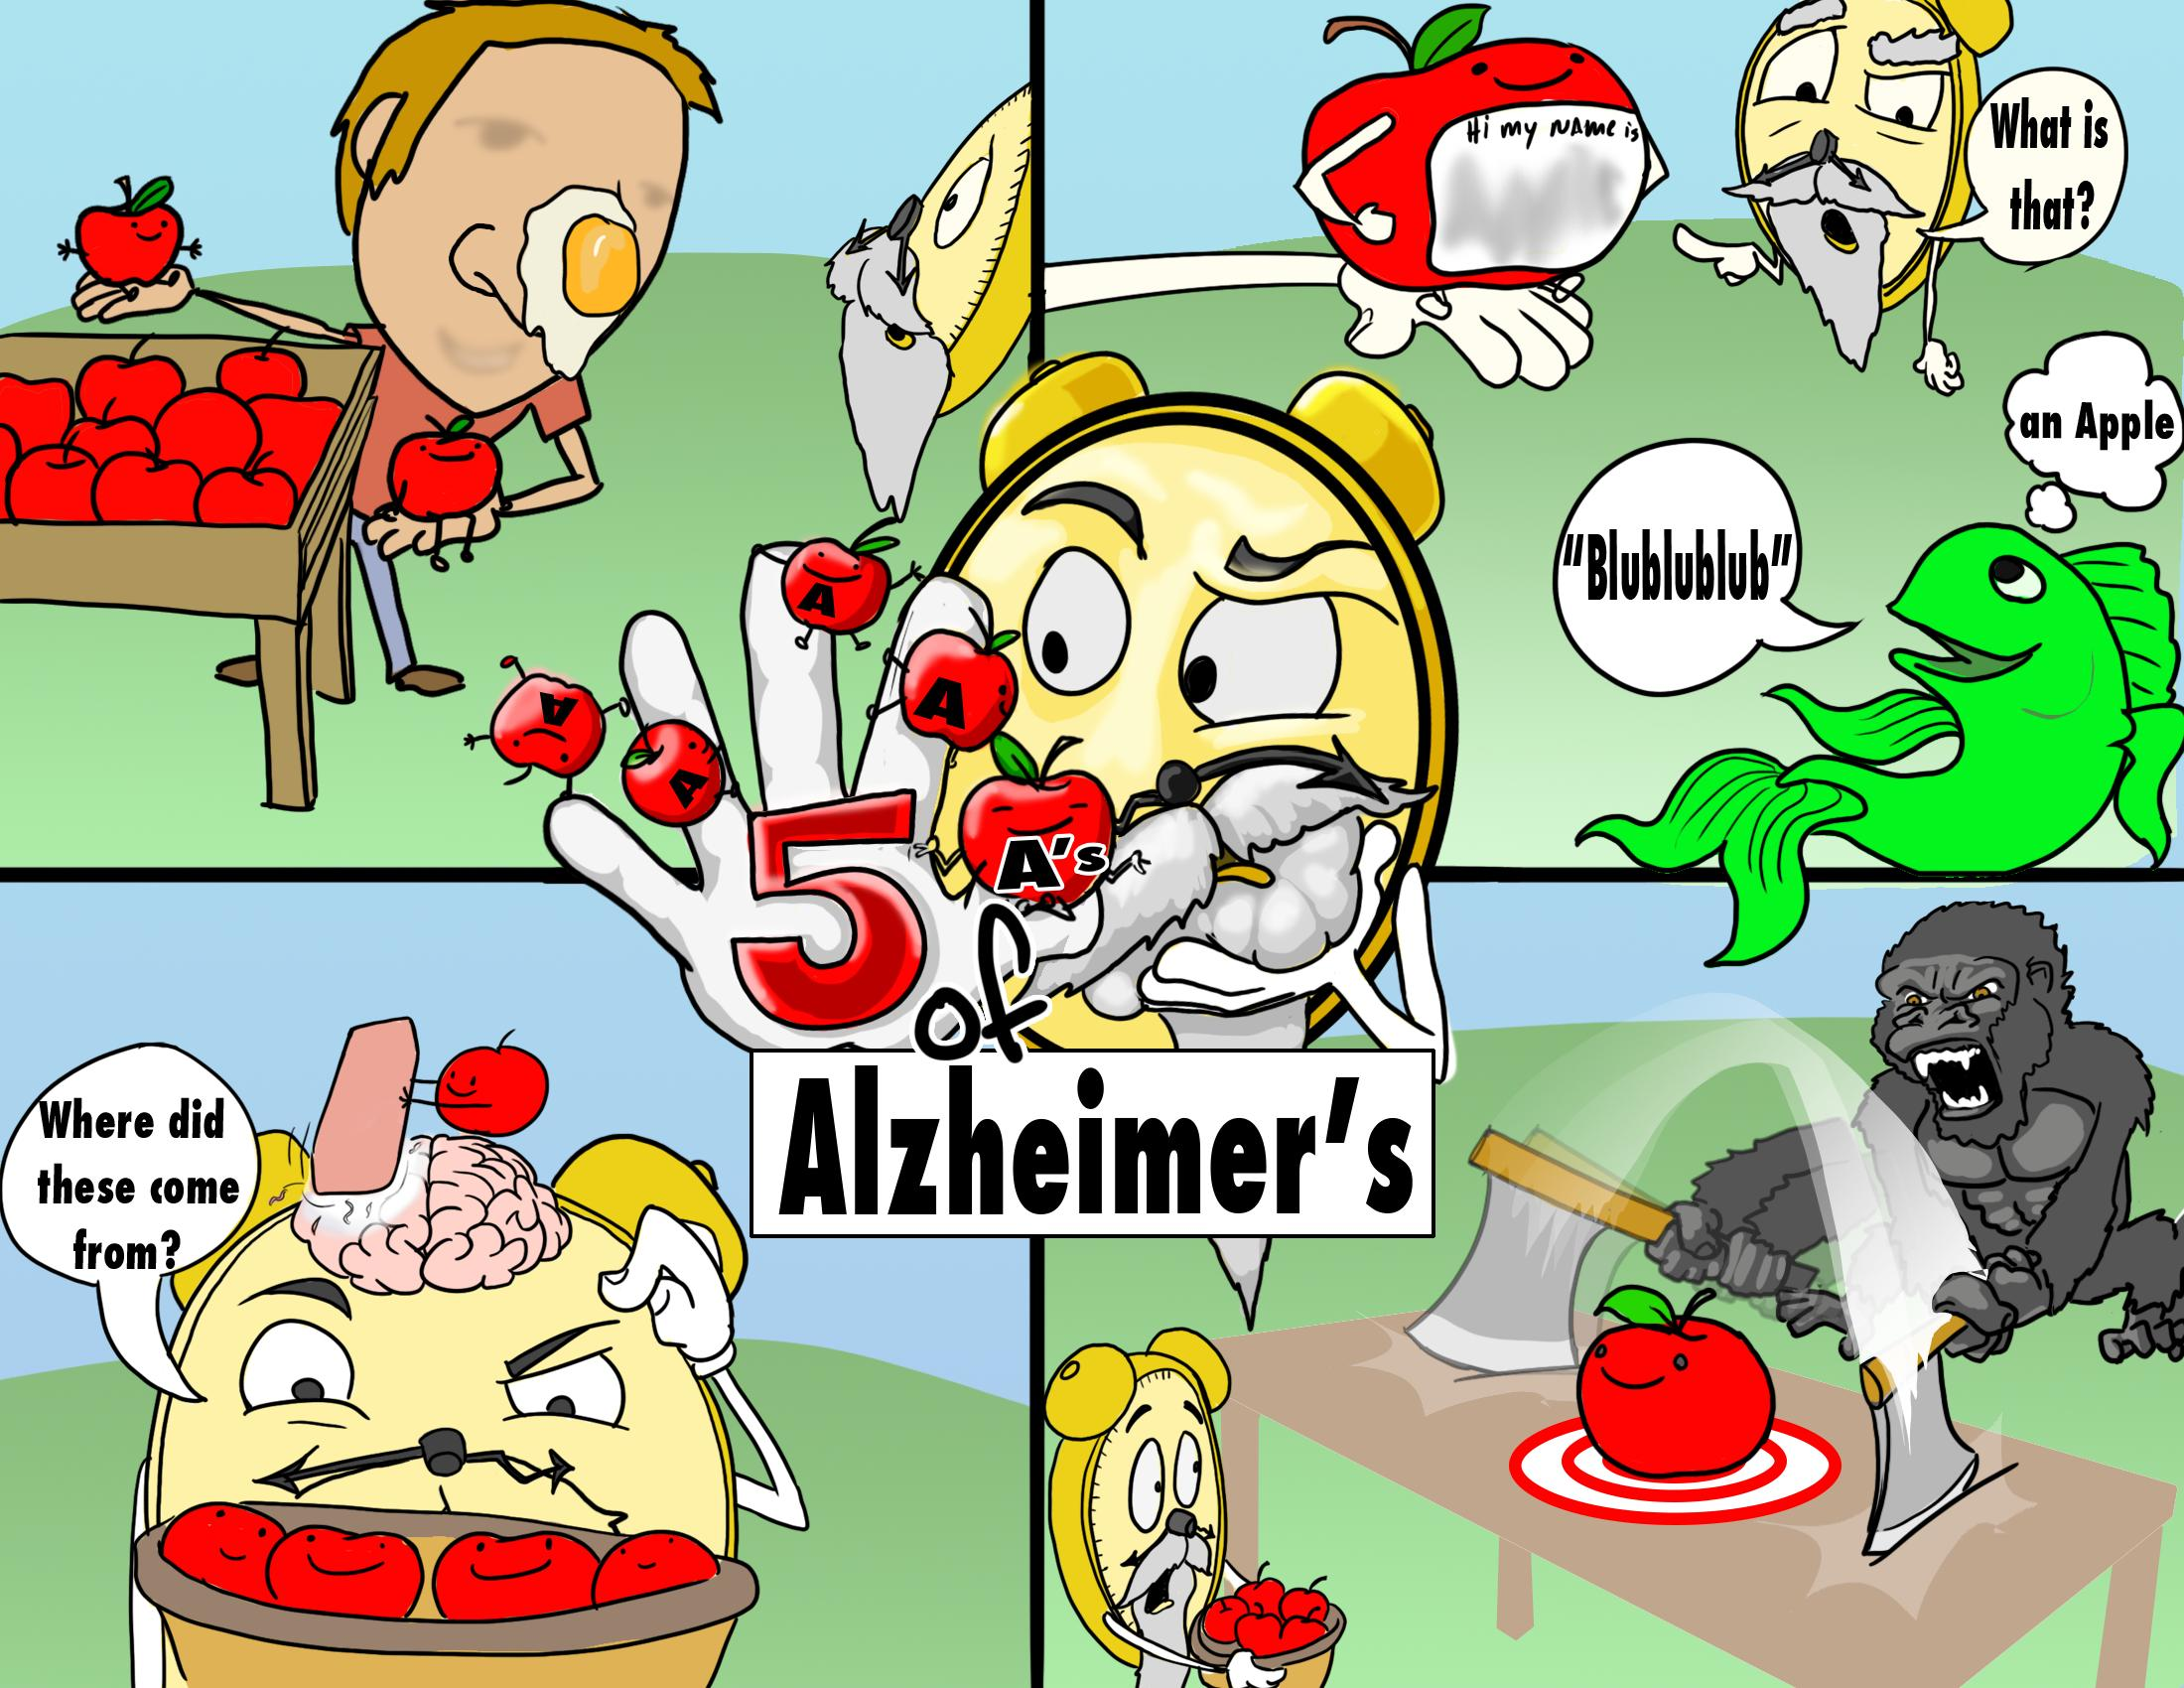 5 A's of Alzheimer's Disease